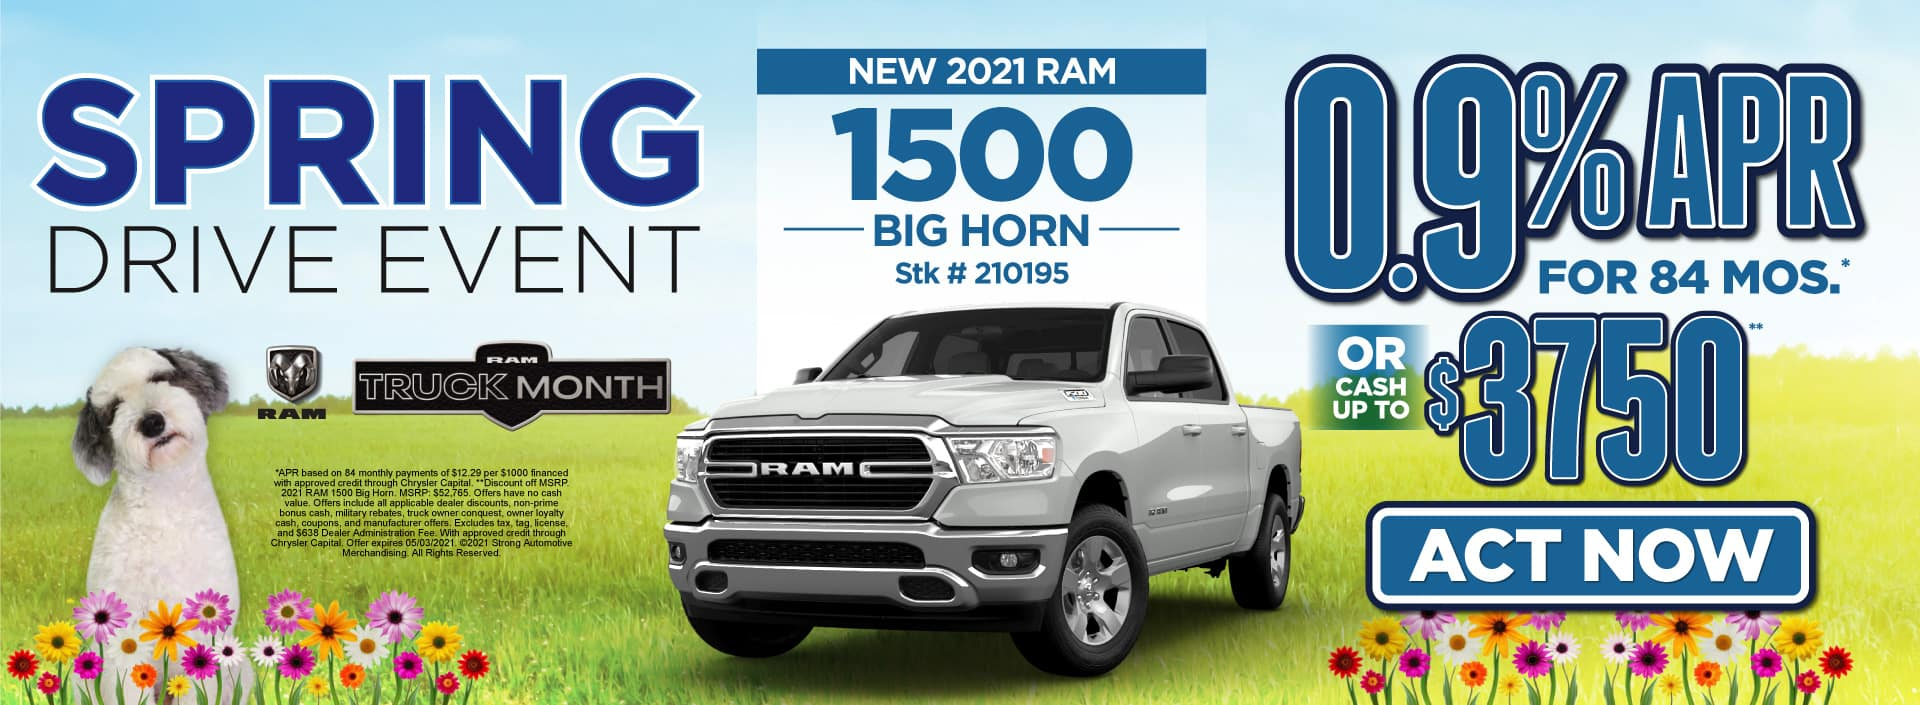 New 2021 Ram 1500 - 0.9% APR for 84 months - Act Now